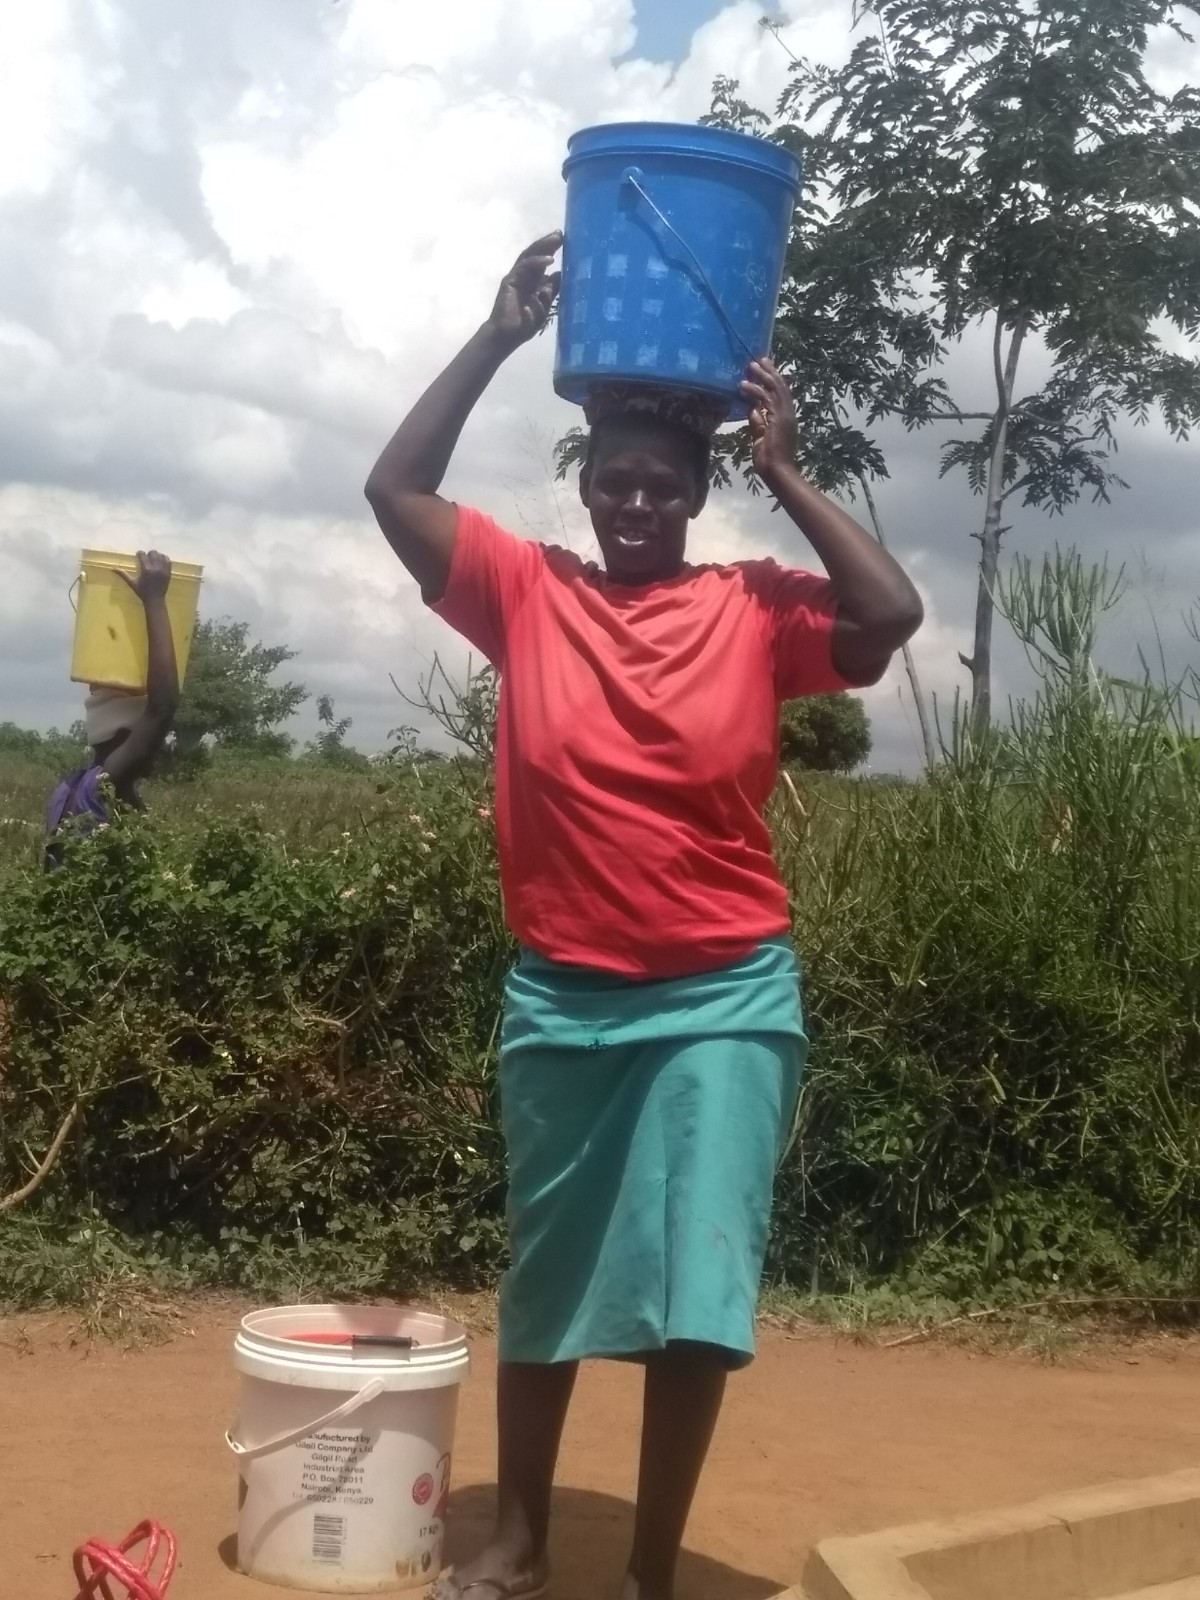 Monica walks to Tanzania (30 miles) four times a day carrying 20 liters (5 gallons) of water each time on her head